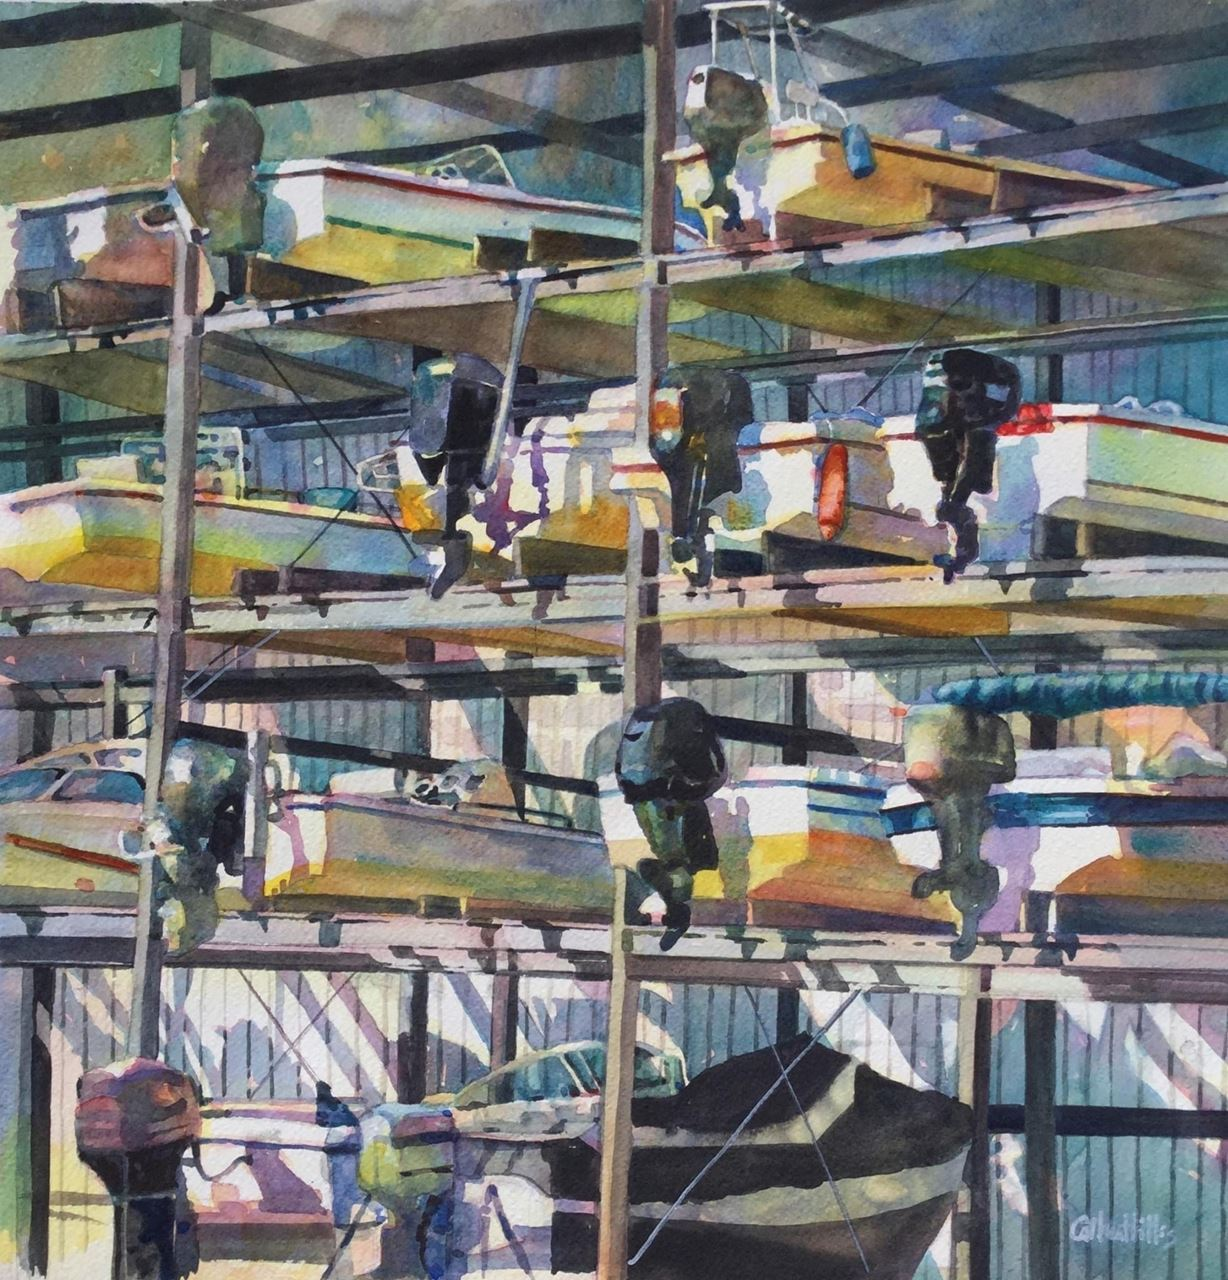 Watermedia painting by Hillis, image of boats in dry dock arranged in a geometric way